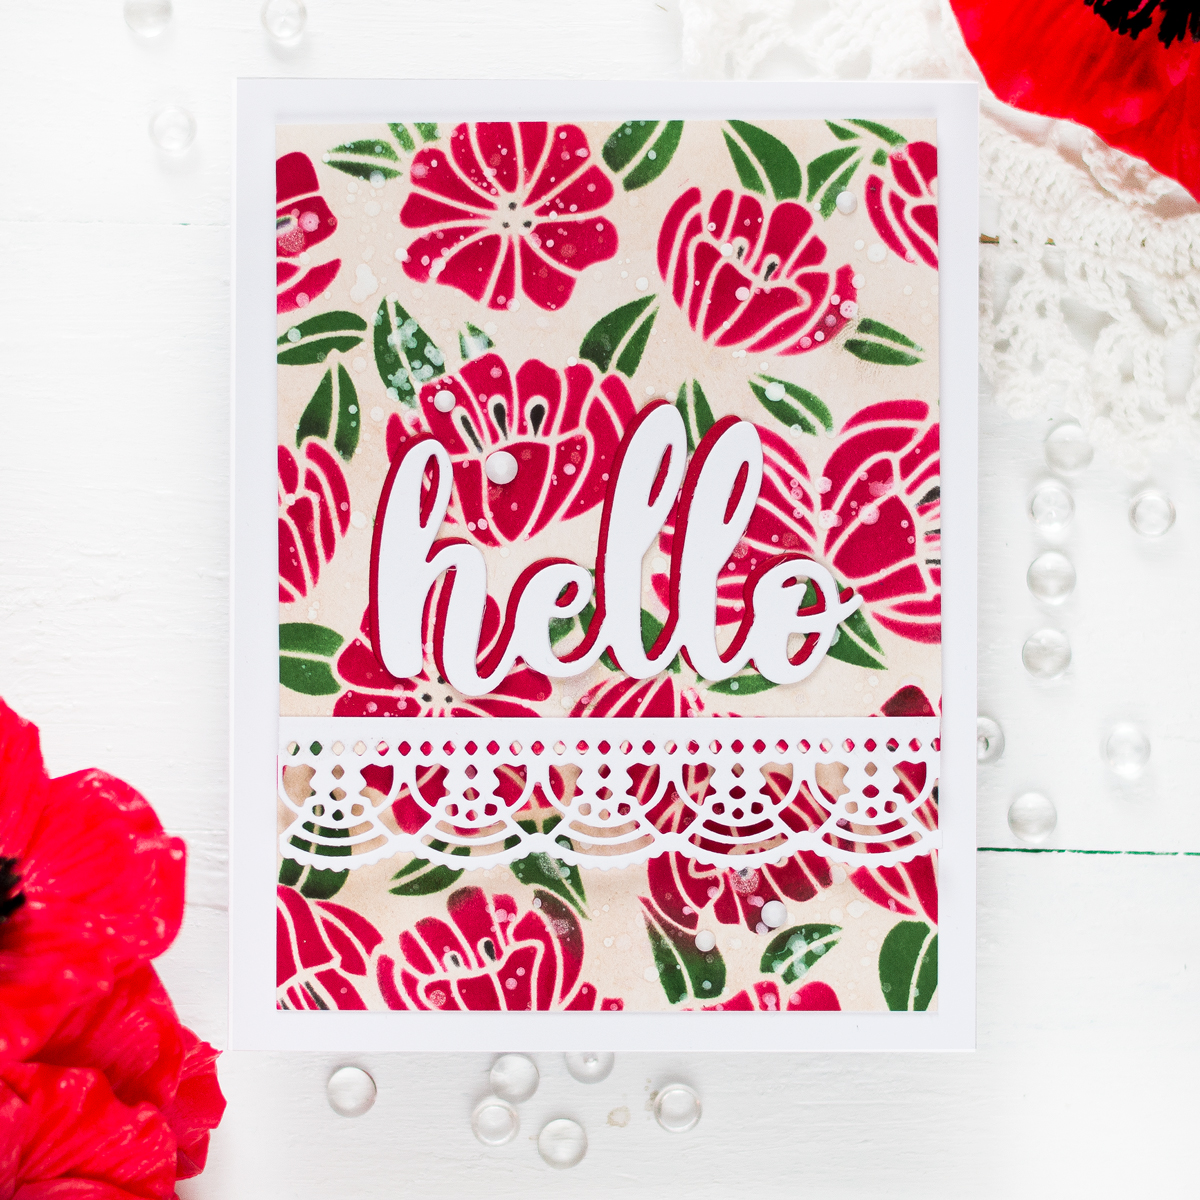 Create an easy floral background using a layering stencil and ink blending. Card by Svitlana Shayevich